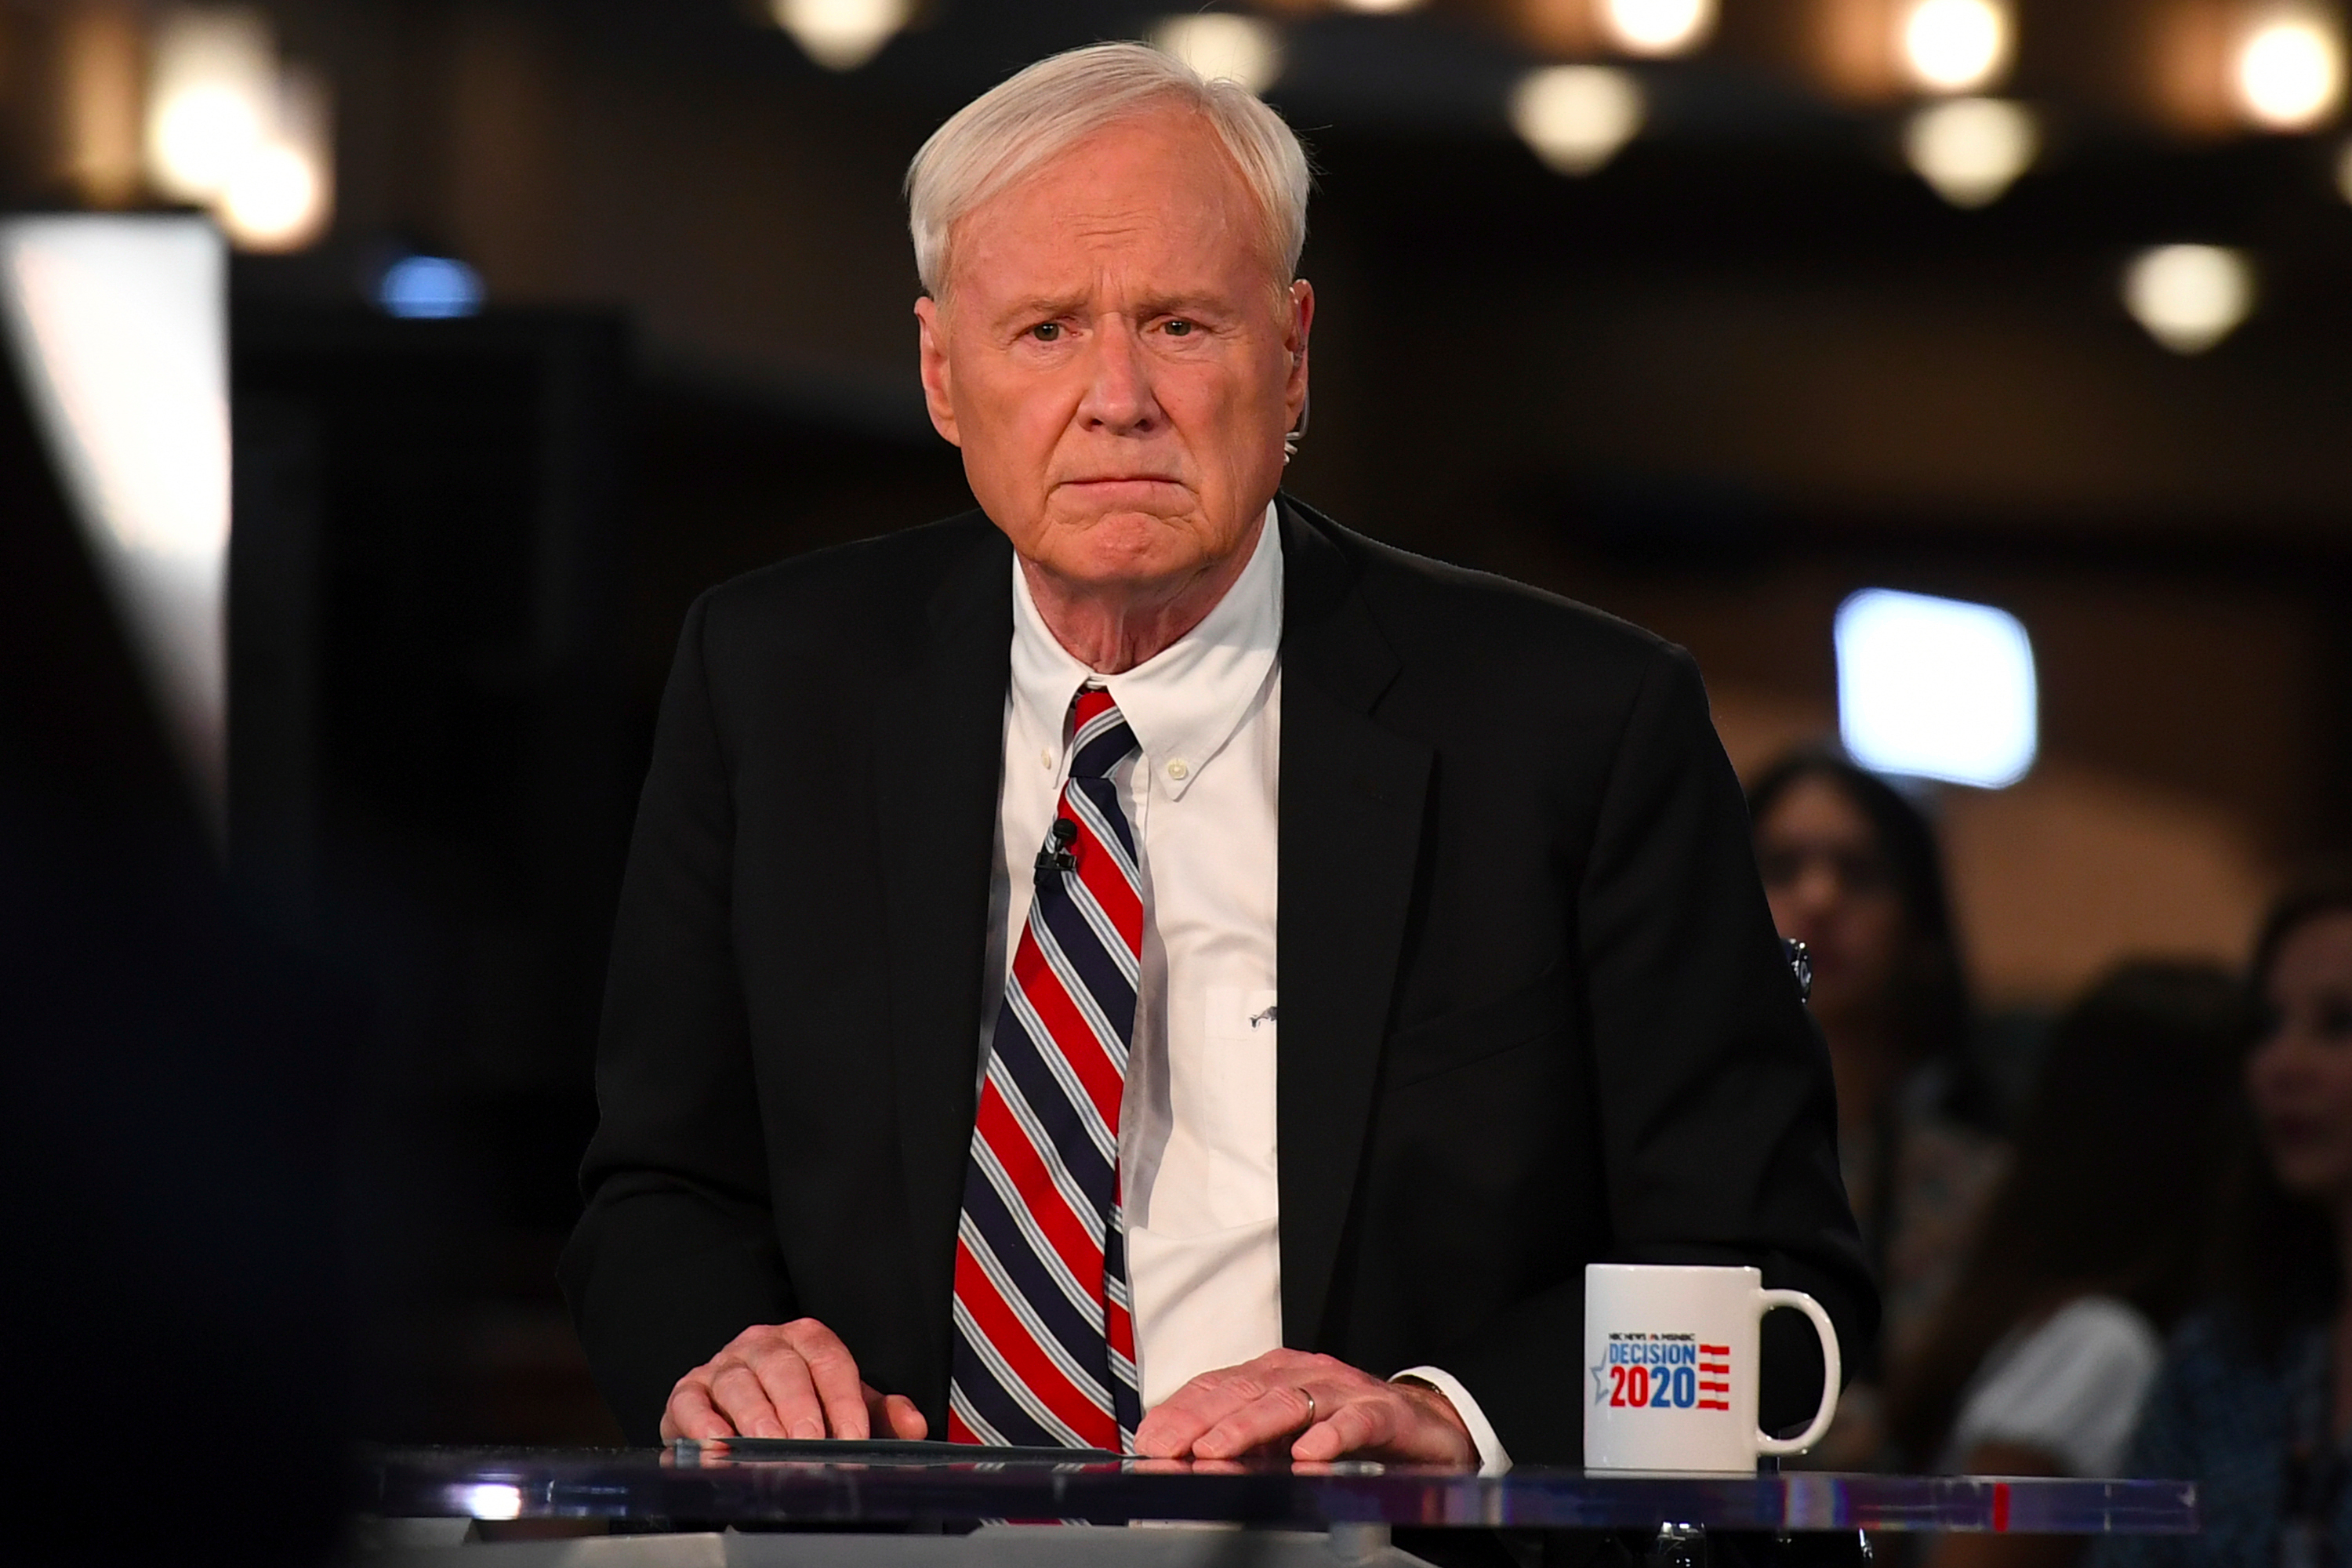 Chris Matthews is seen in the spin room during a 2020 Democratic primary debate in Miami in June. (MediaPunch/IPX)